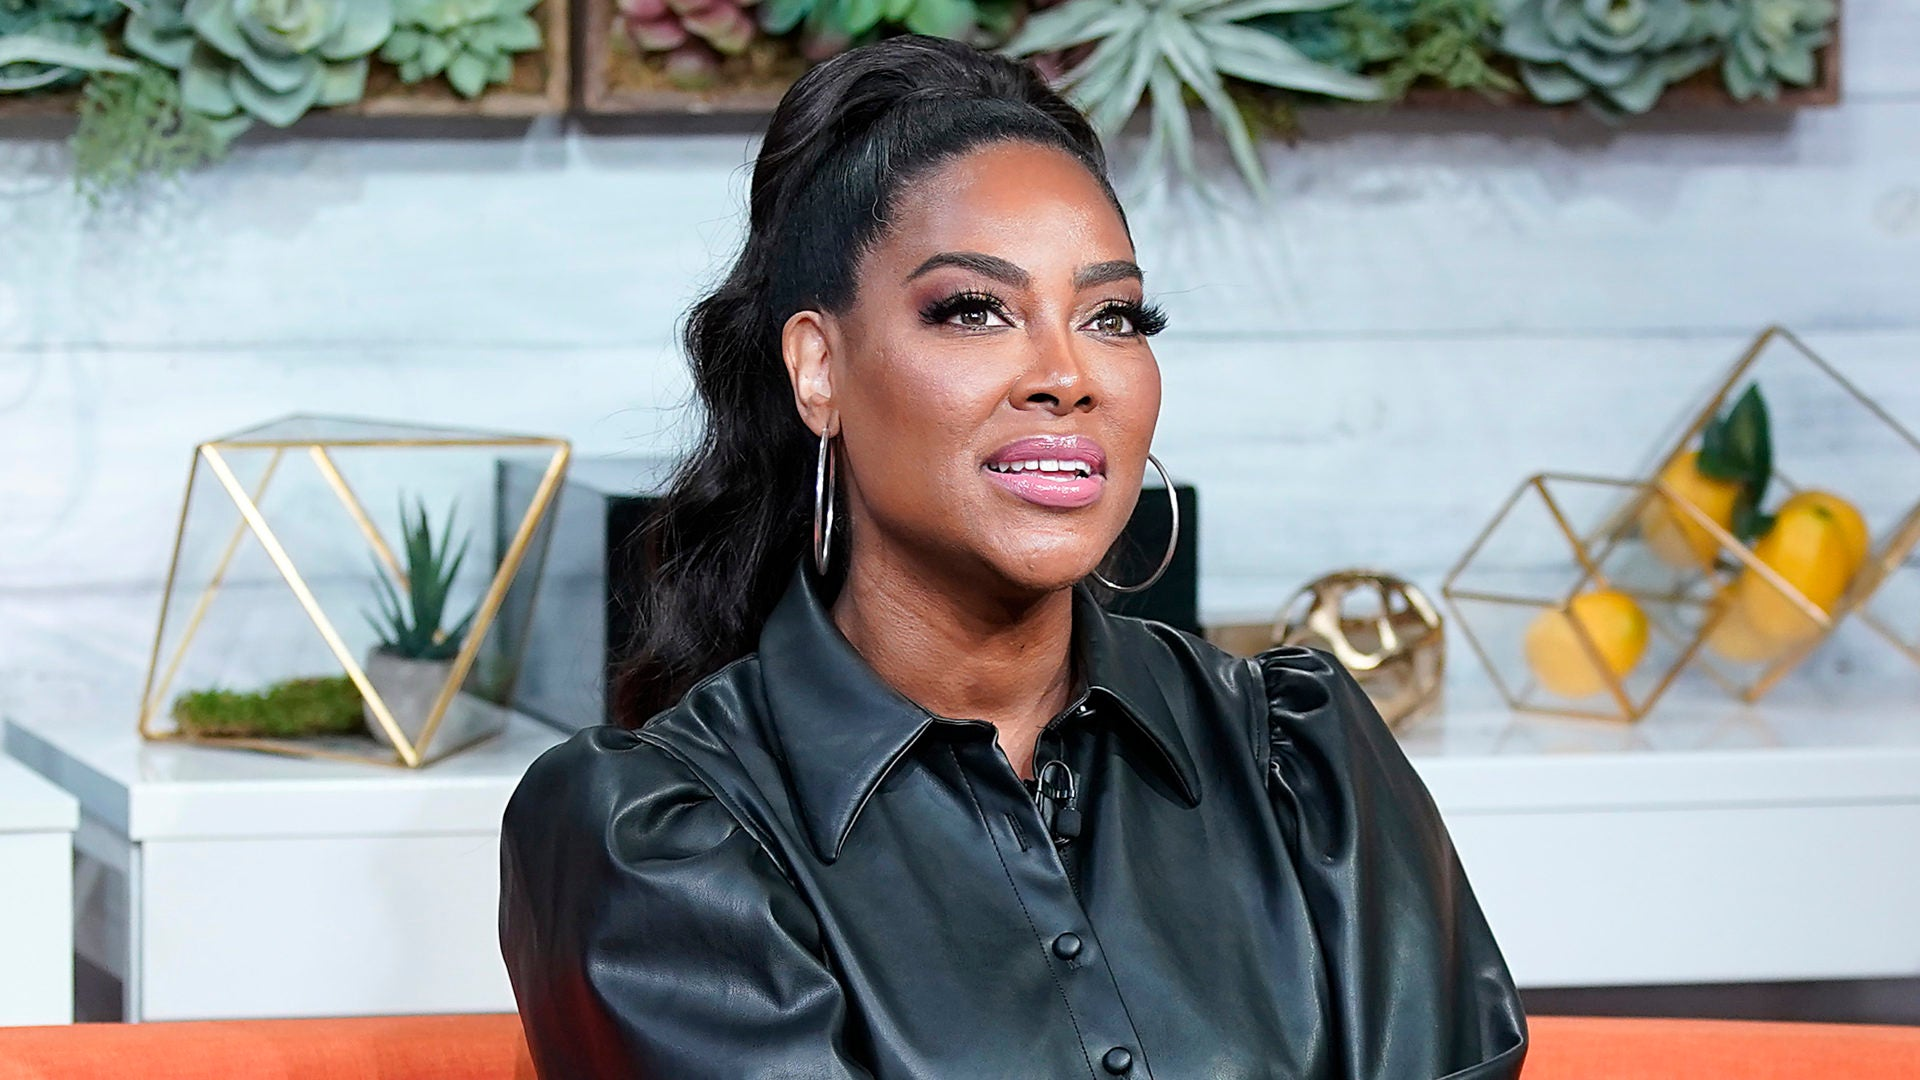 Kenya Moore Leaves Fans In Awe With Her Recent Stunning Look – Check It Out Here